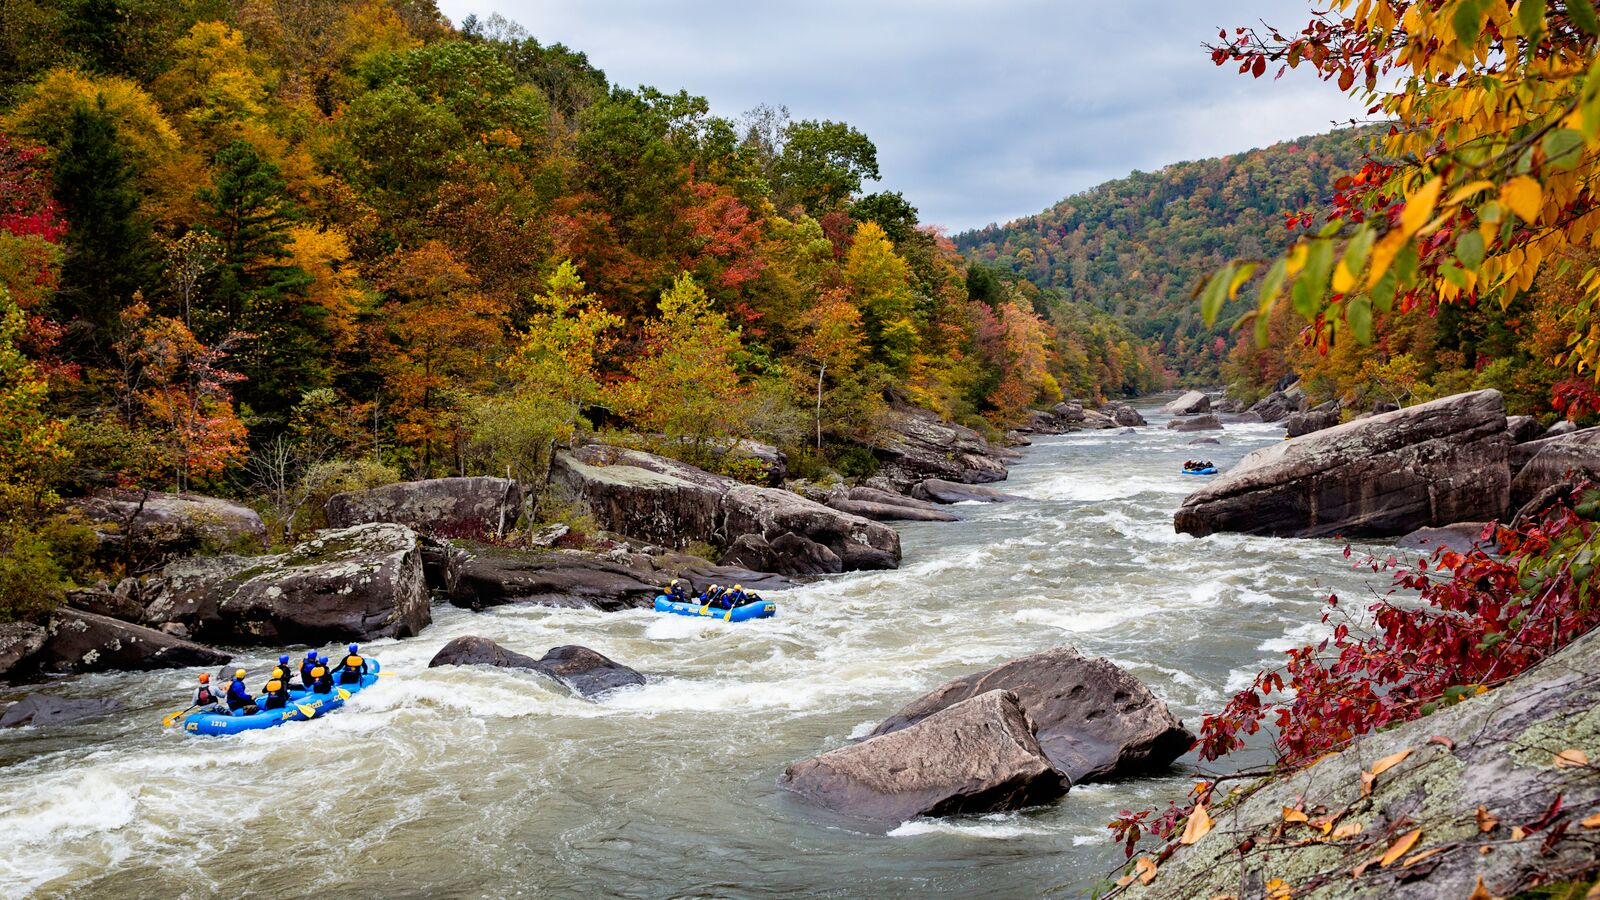 A beautiful view of an Upper Gauley River Rafting Trip